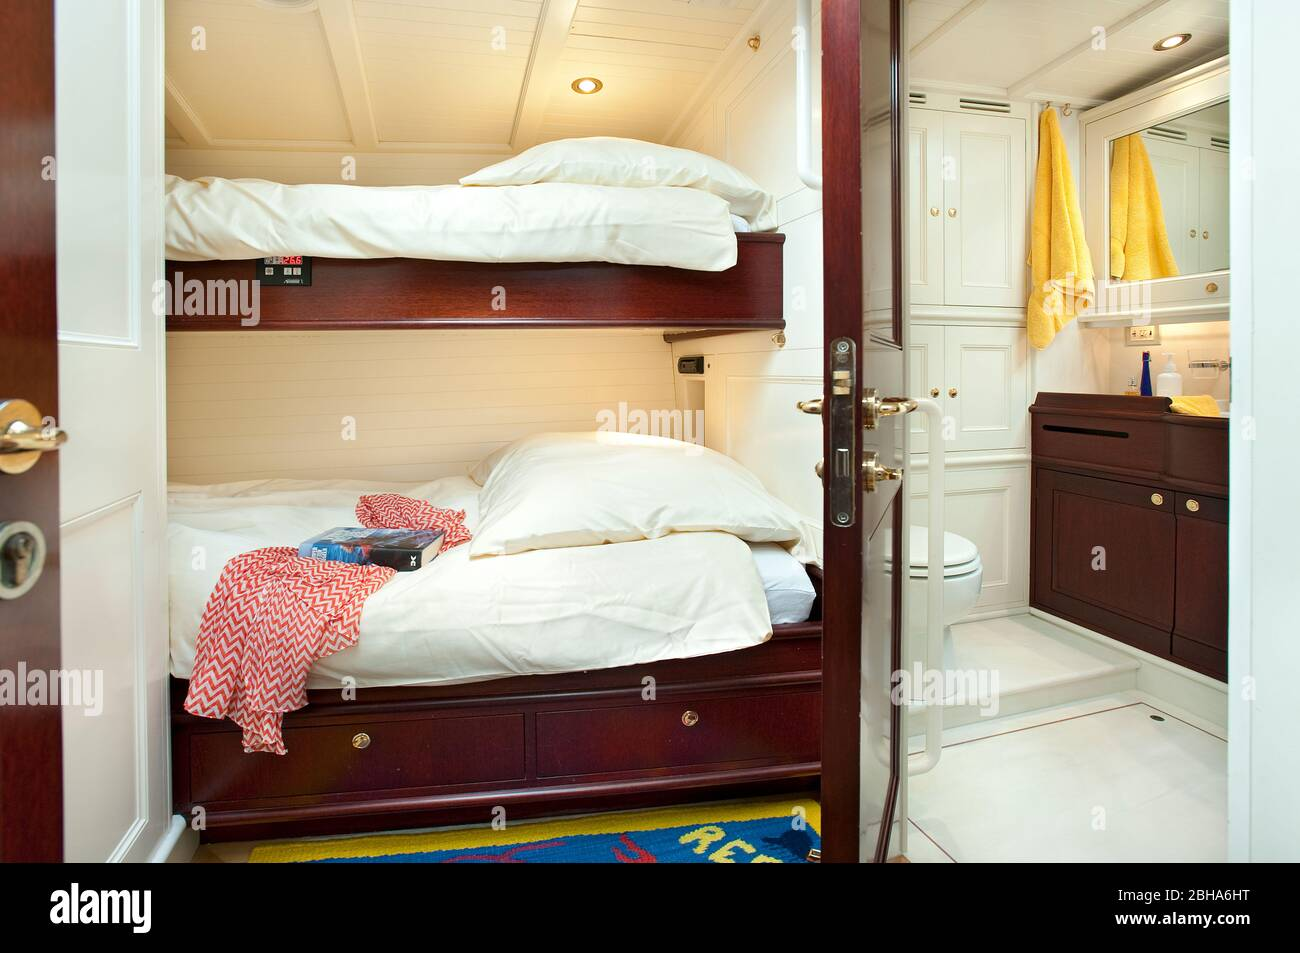 Luxury Yacht Twin Cabin Bunk Beds Showing Shower And Wc Stock Photo Alamy